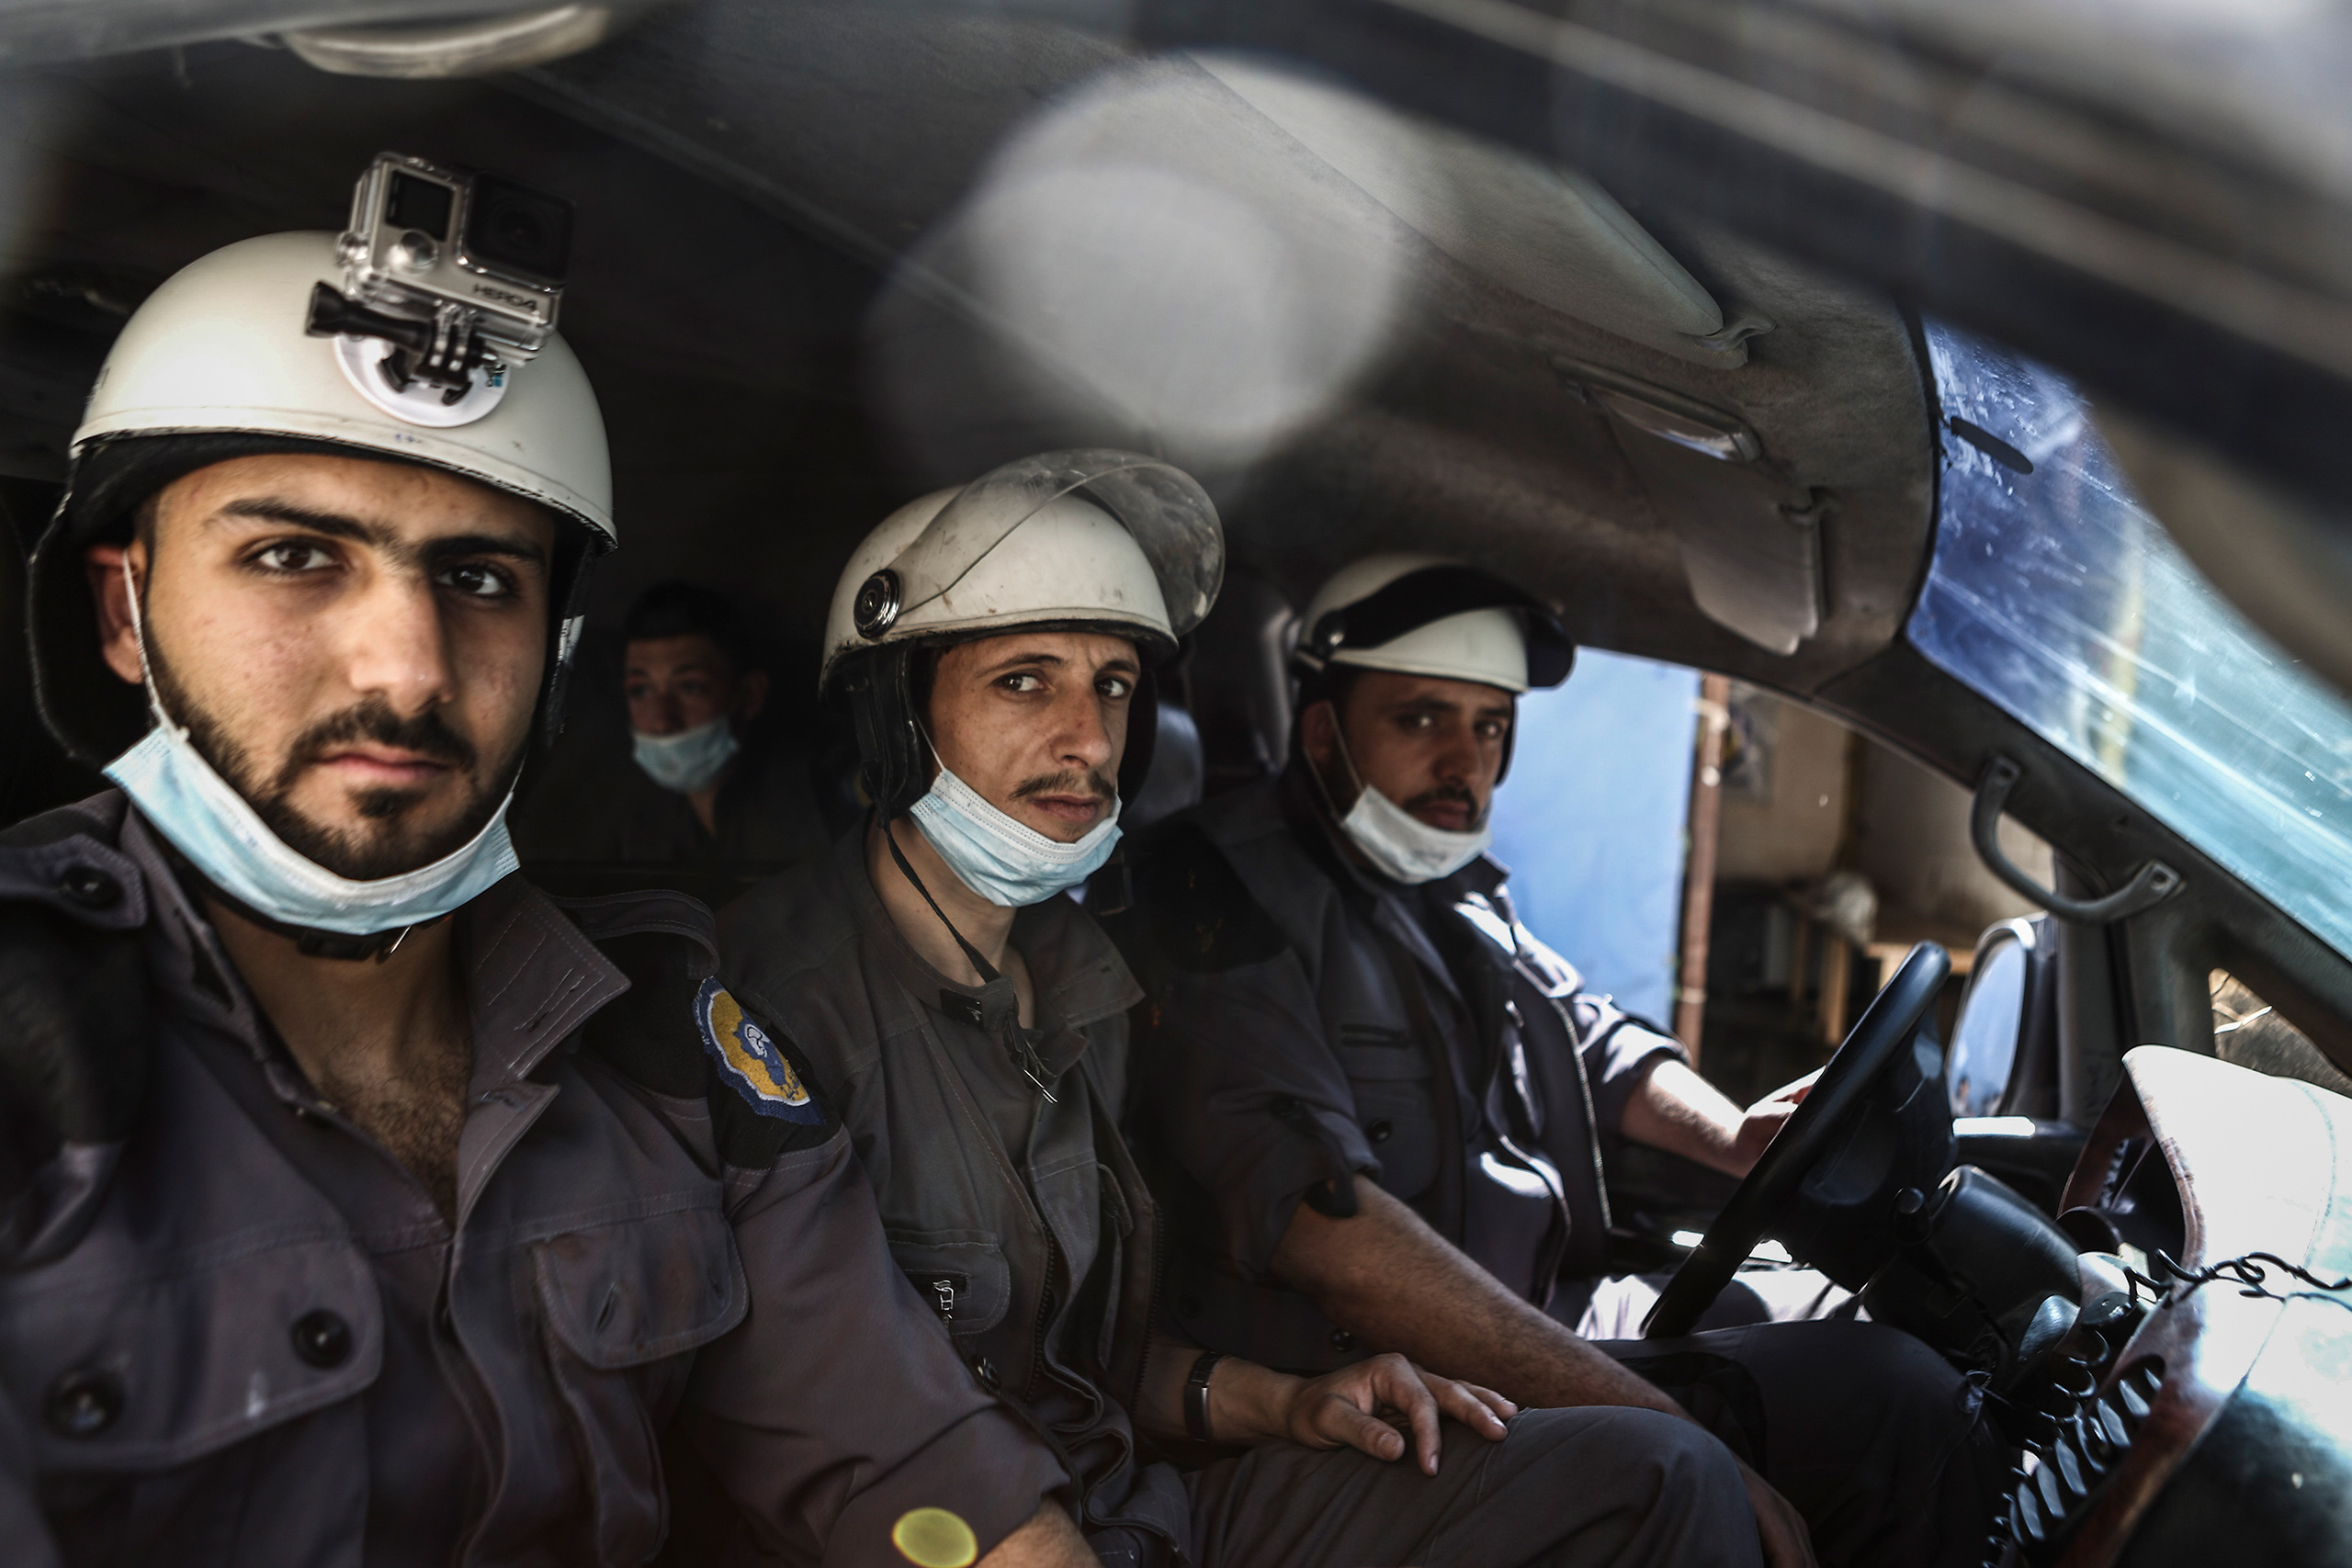 Three members of the White Helmets arrive at the site of an airstrike in Douma on Oct. 5, 2016.From  The White Helmets of Syria.  Oct. 17, 2016 issue.